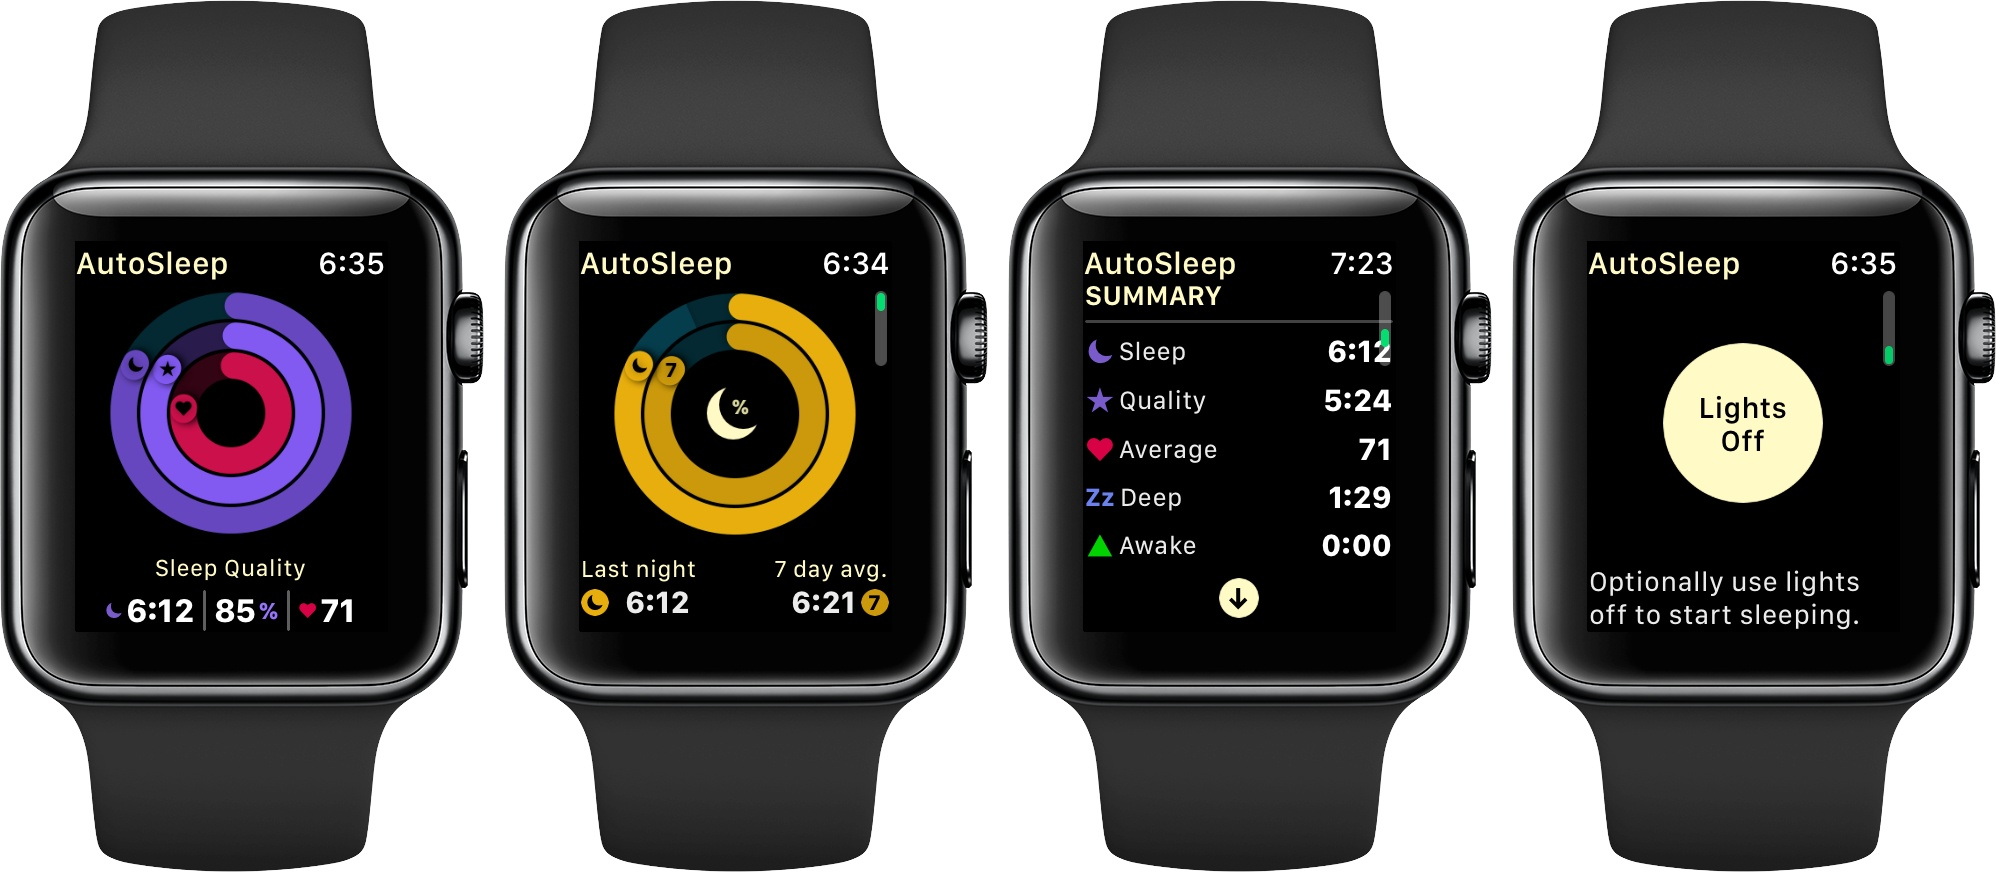 AutoSleep 5 Adds Automatic Apple Watch Sleep Tracking and Much ...